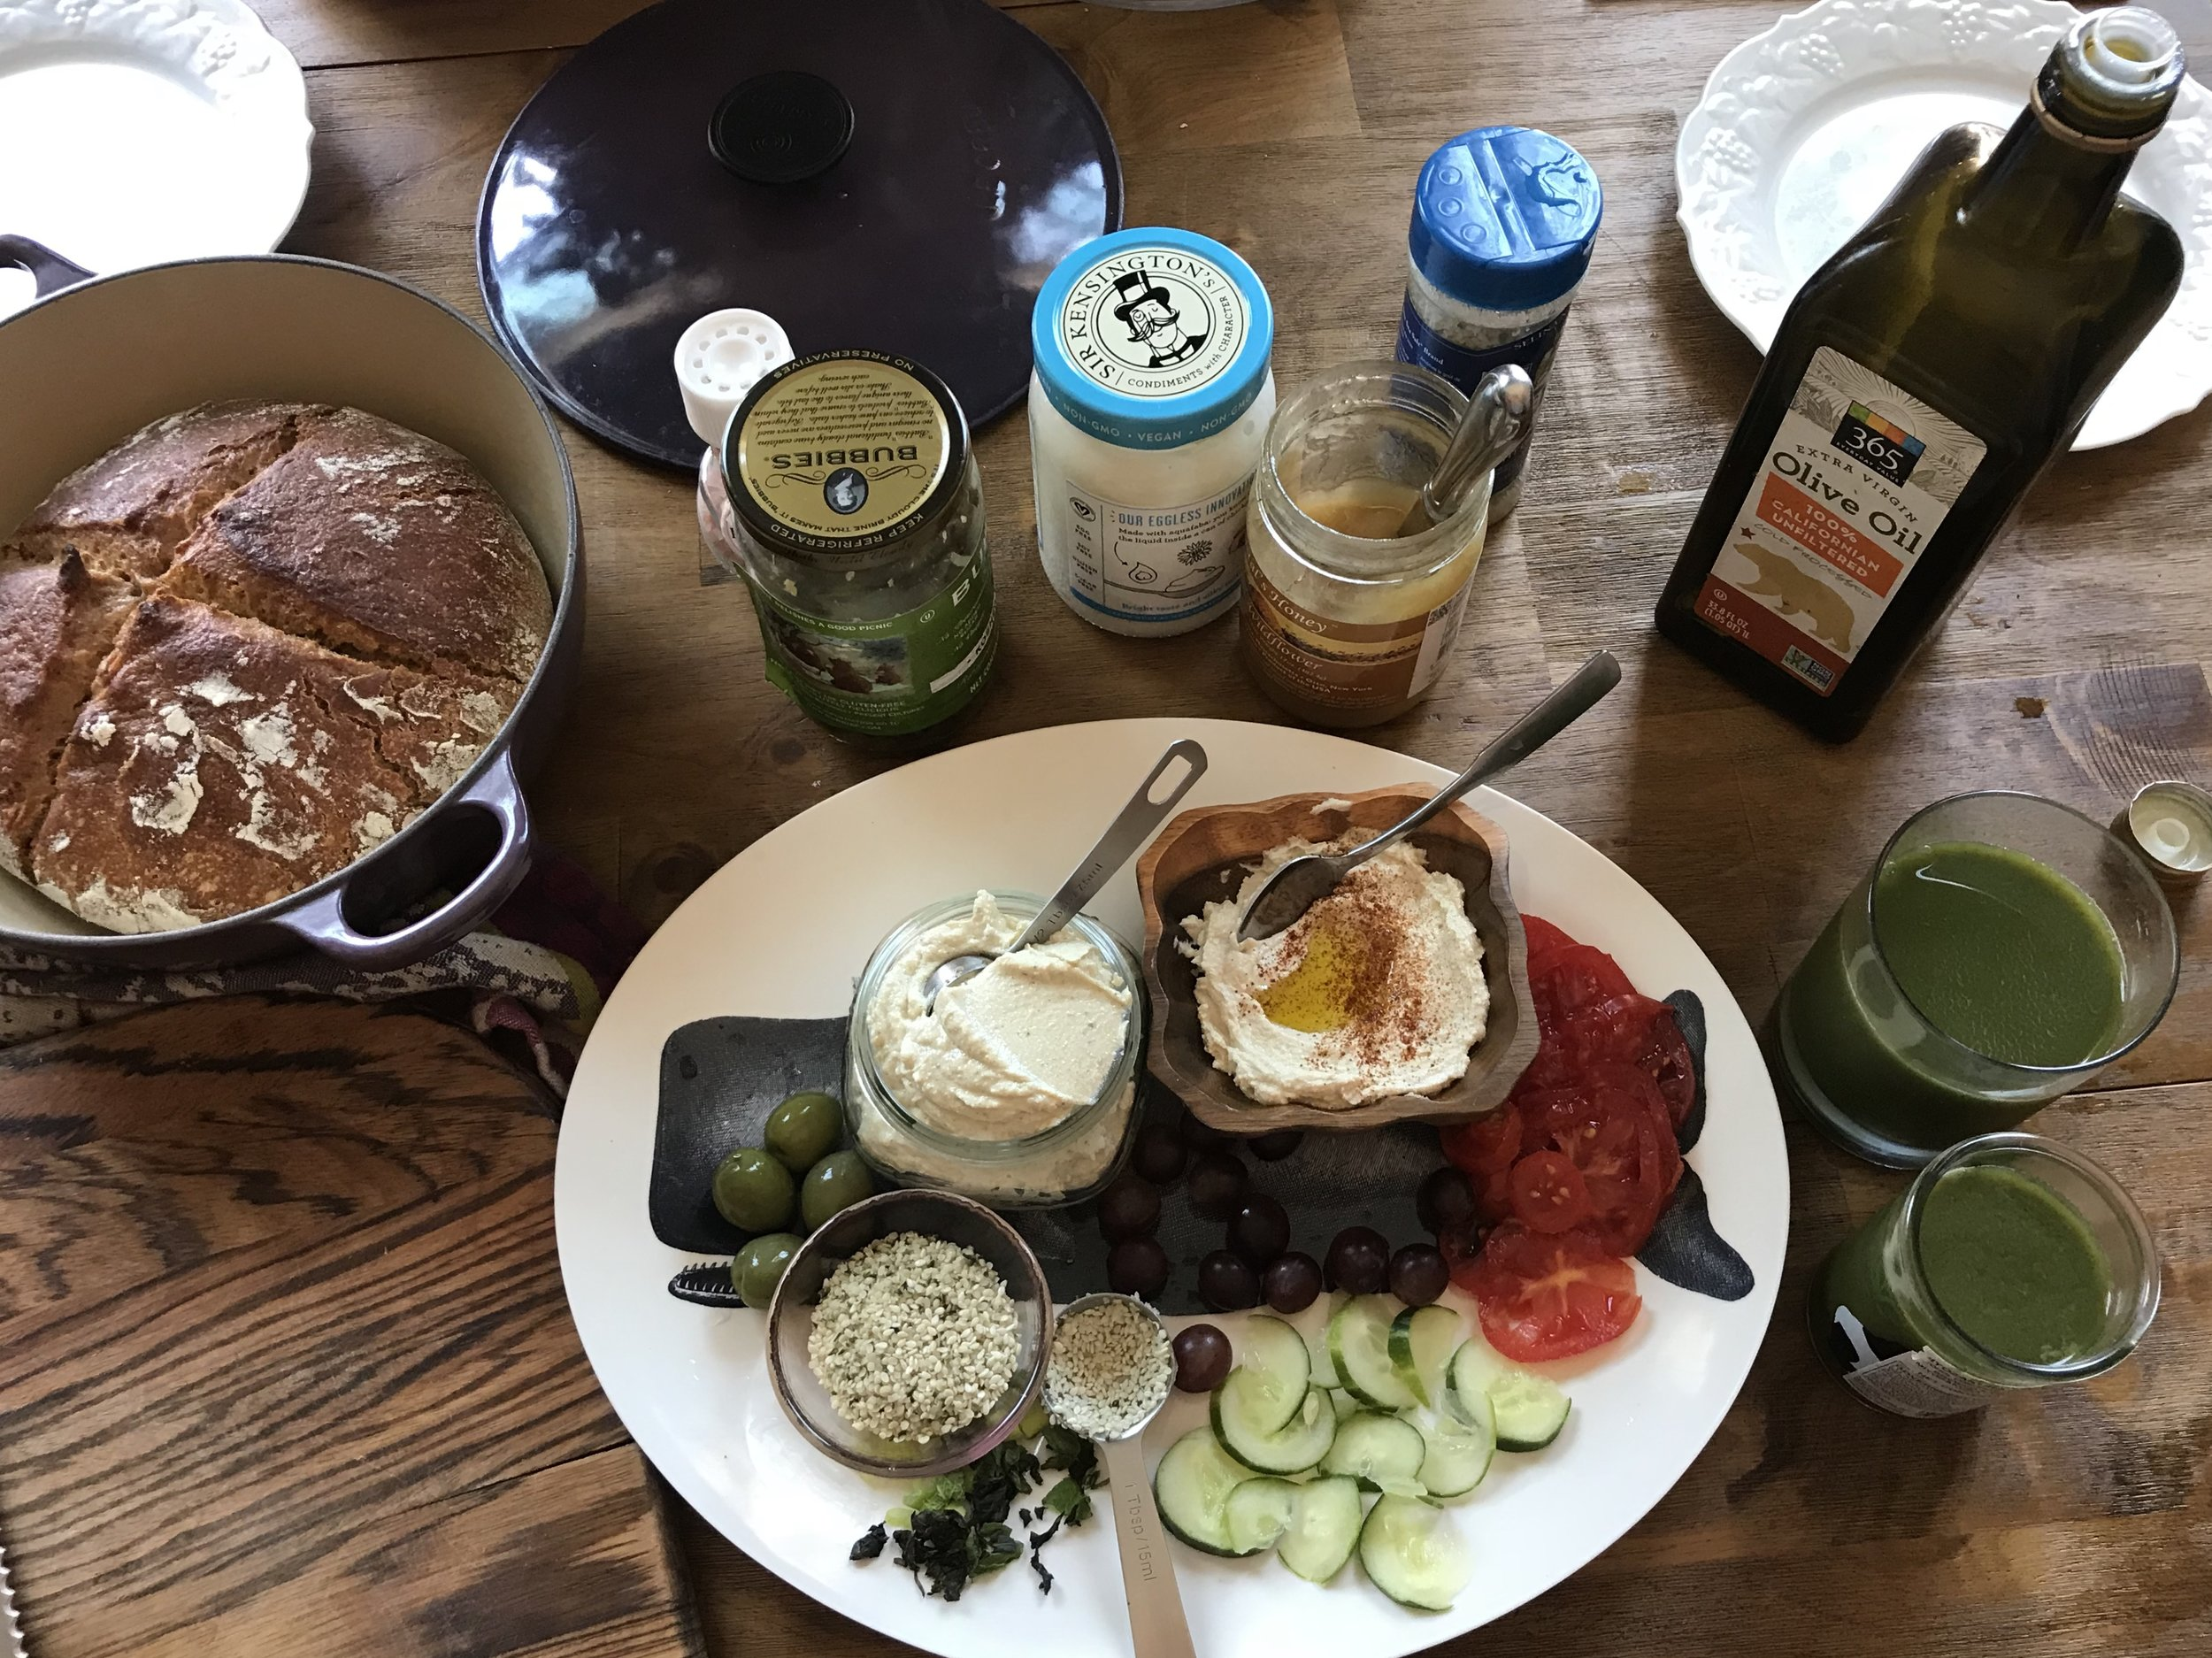 Lunch board with hummus, veggies, fresh sourdough, and all the toppings